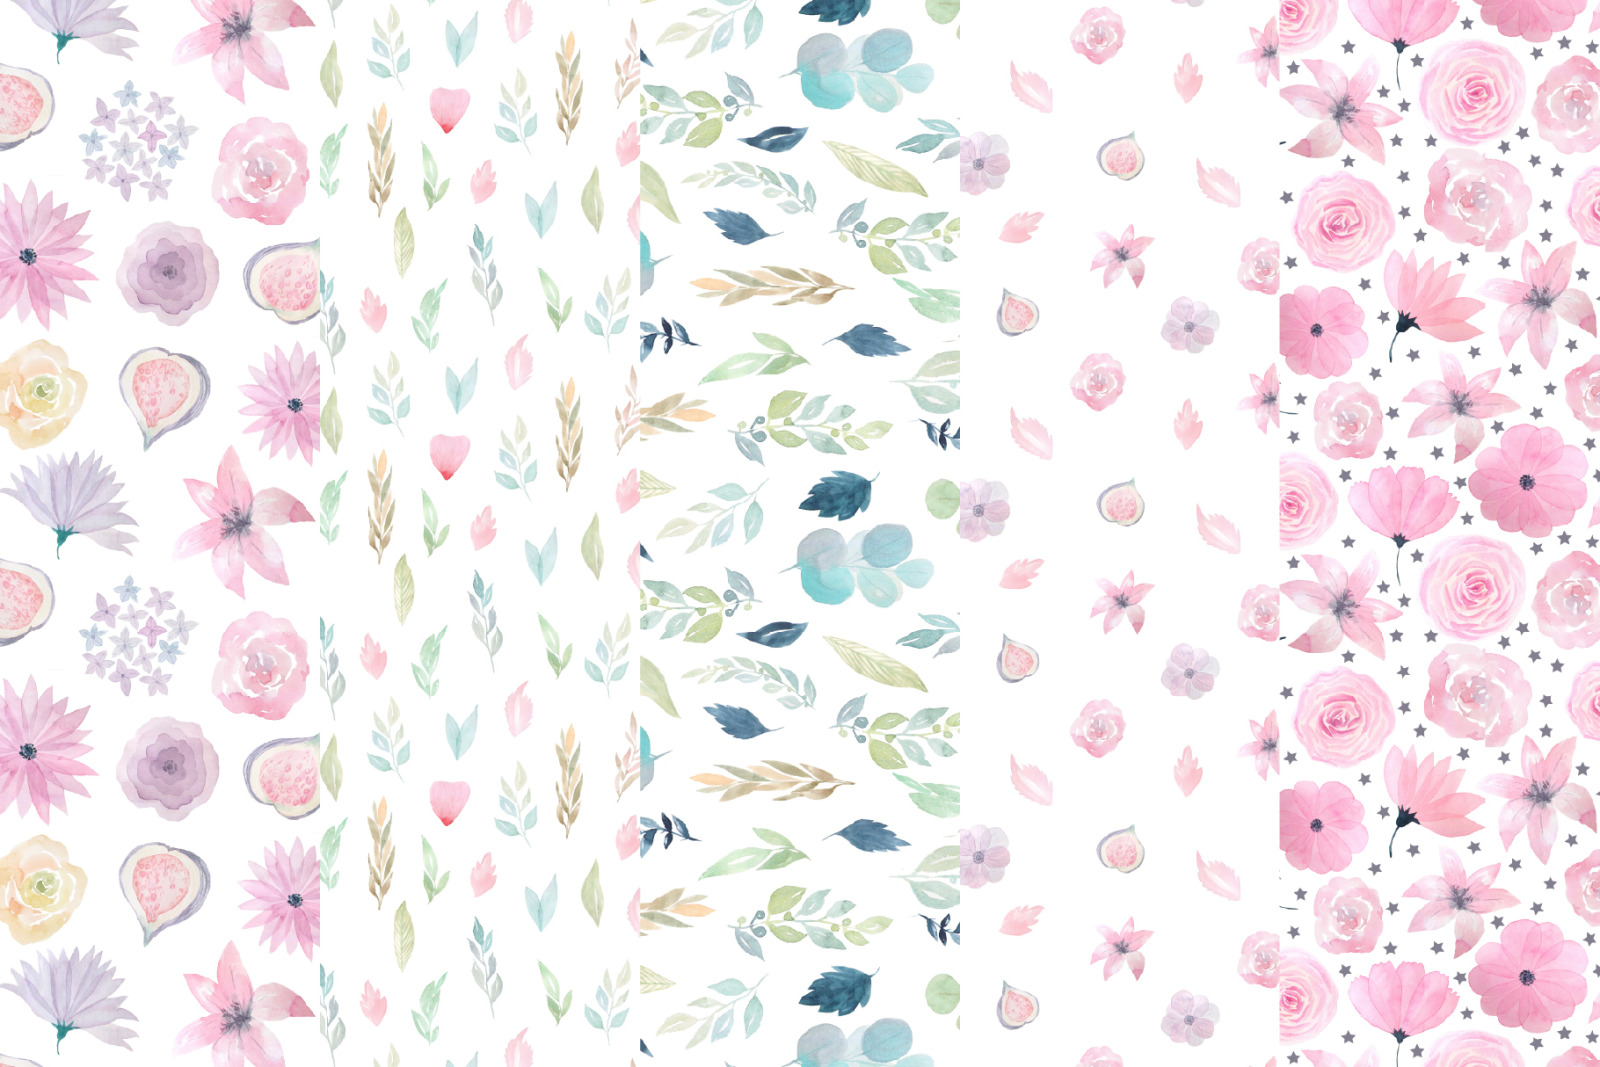 15 Morning Meadow Seamless Patterns